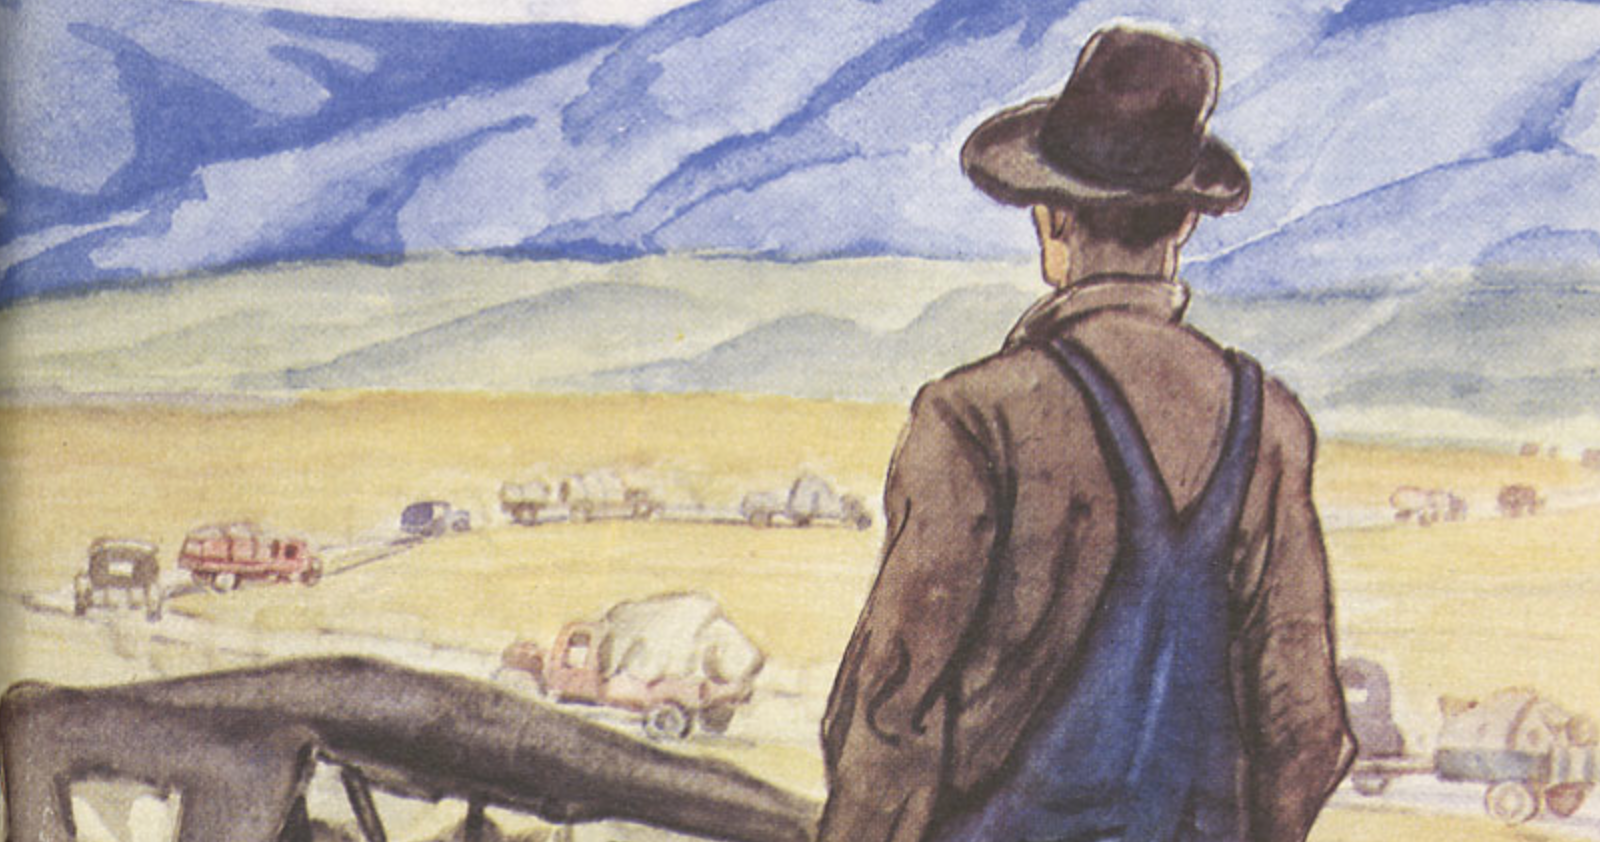 an analysis of the novel the grapes of wrath by john steinbeck Don't really know why the grapes of wrath is titled the grapes of wrath  the grapes of wrath by john steinbeck  this novel, the grapes of wrath may be.